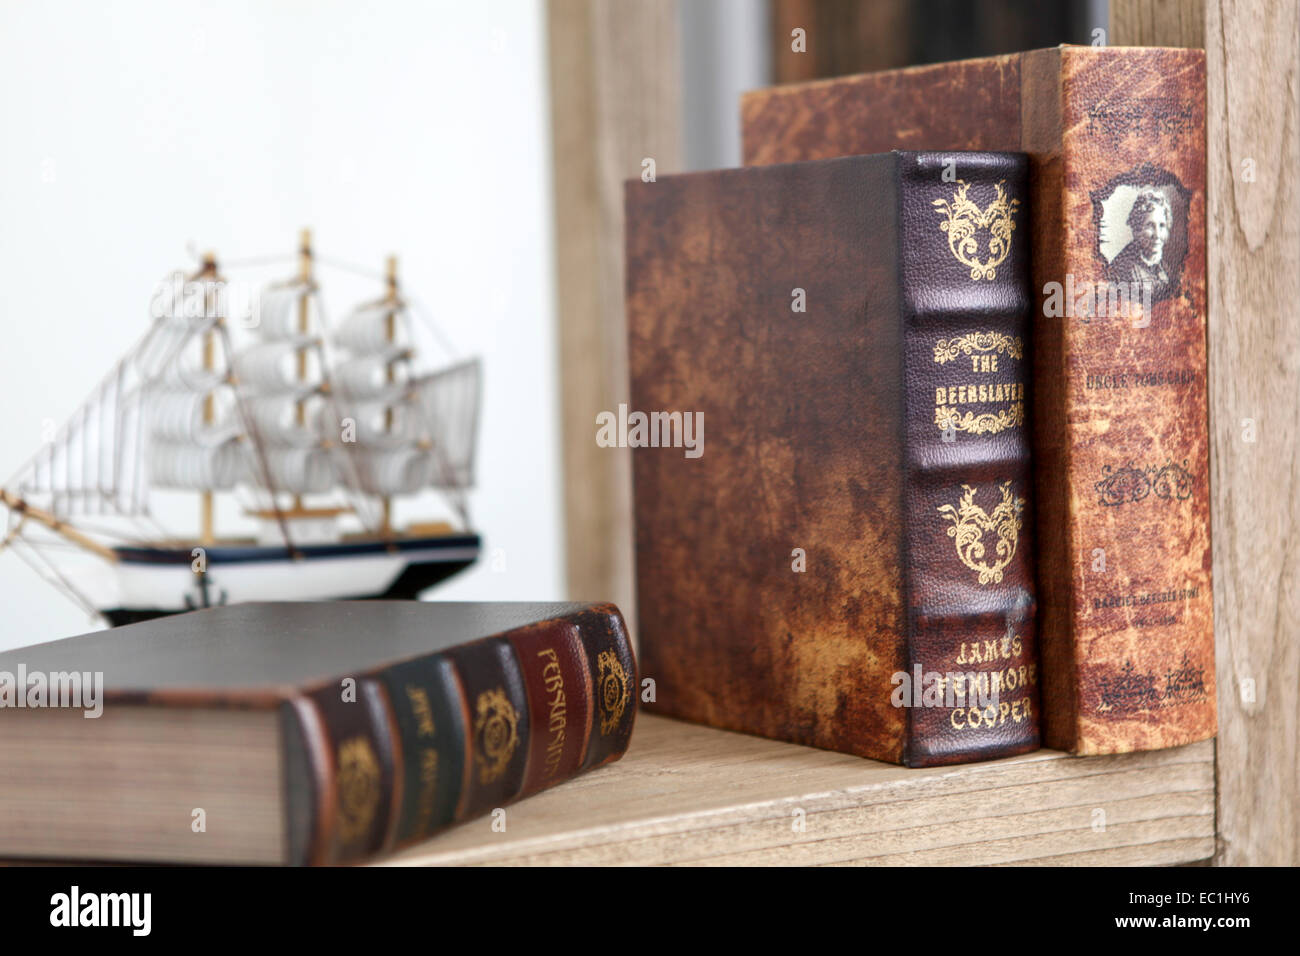 Old rare leatherbound books on a bookshelf with a model of a tall ship - Stock Image